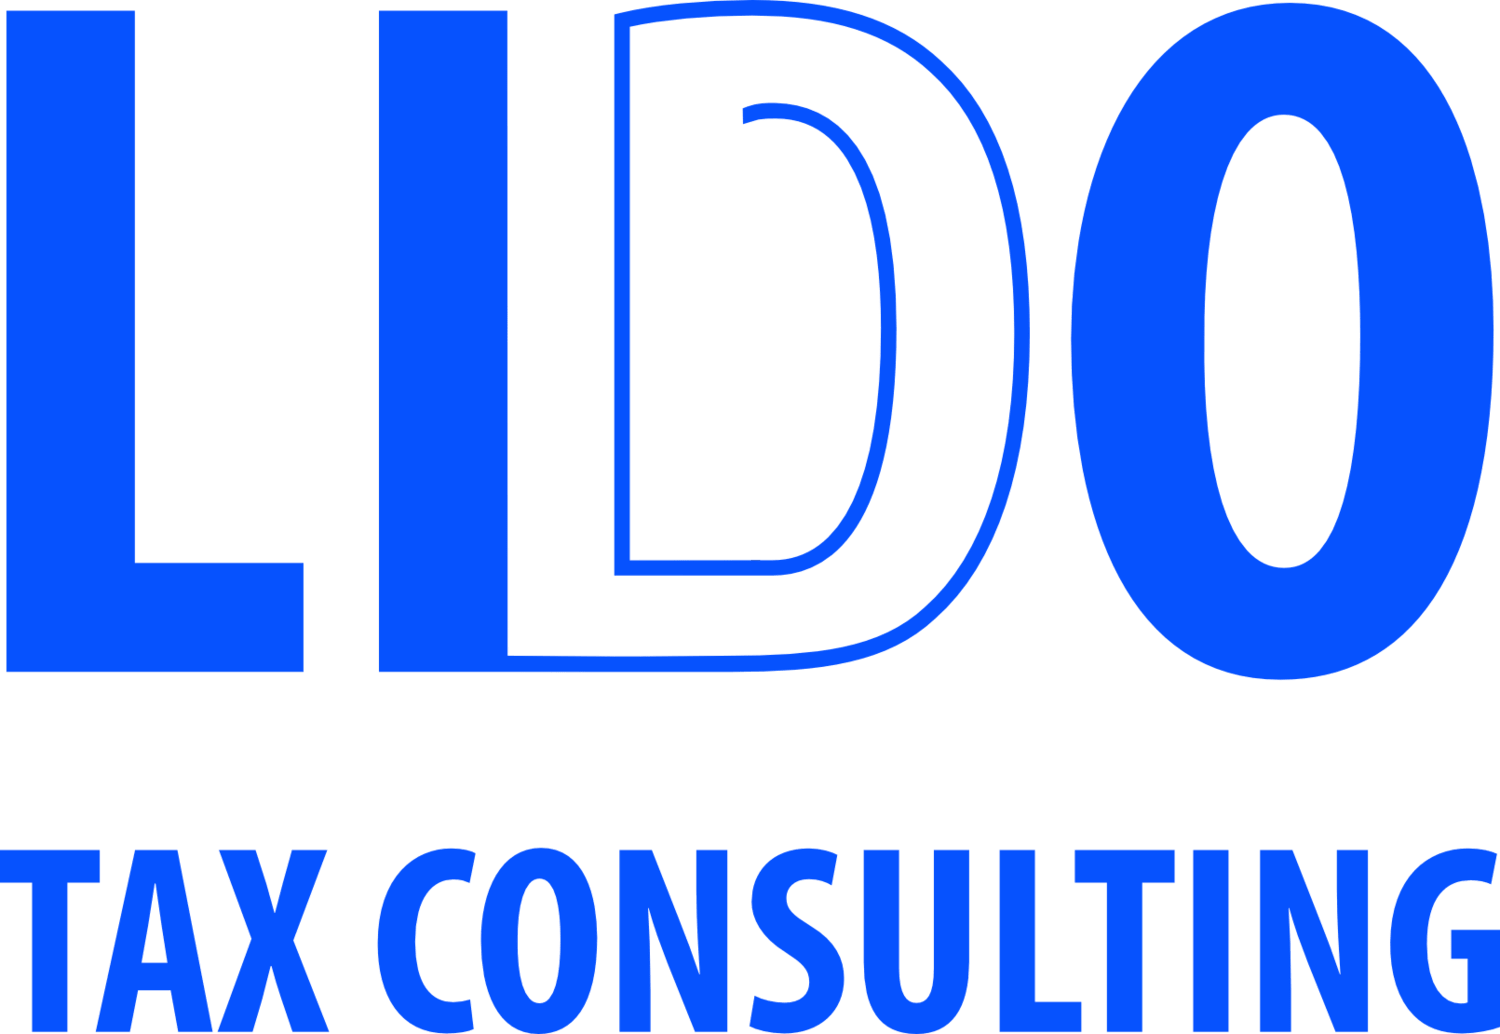 Lido Tax Consulting - Tax Adviser London